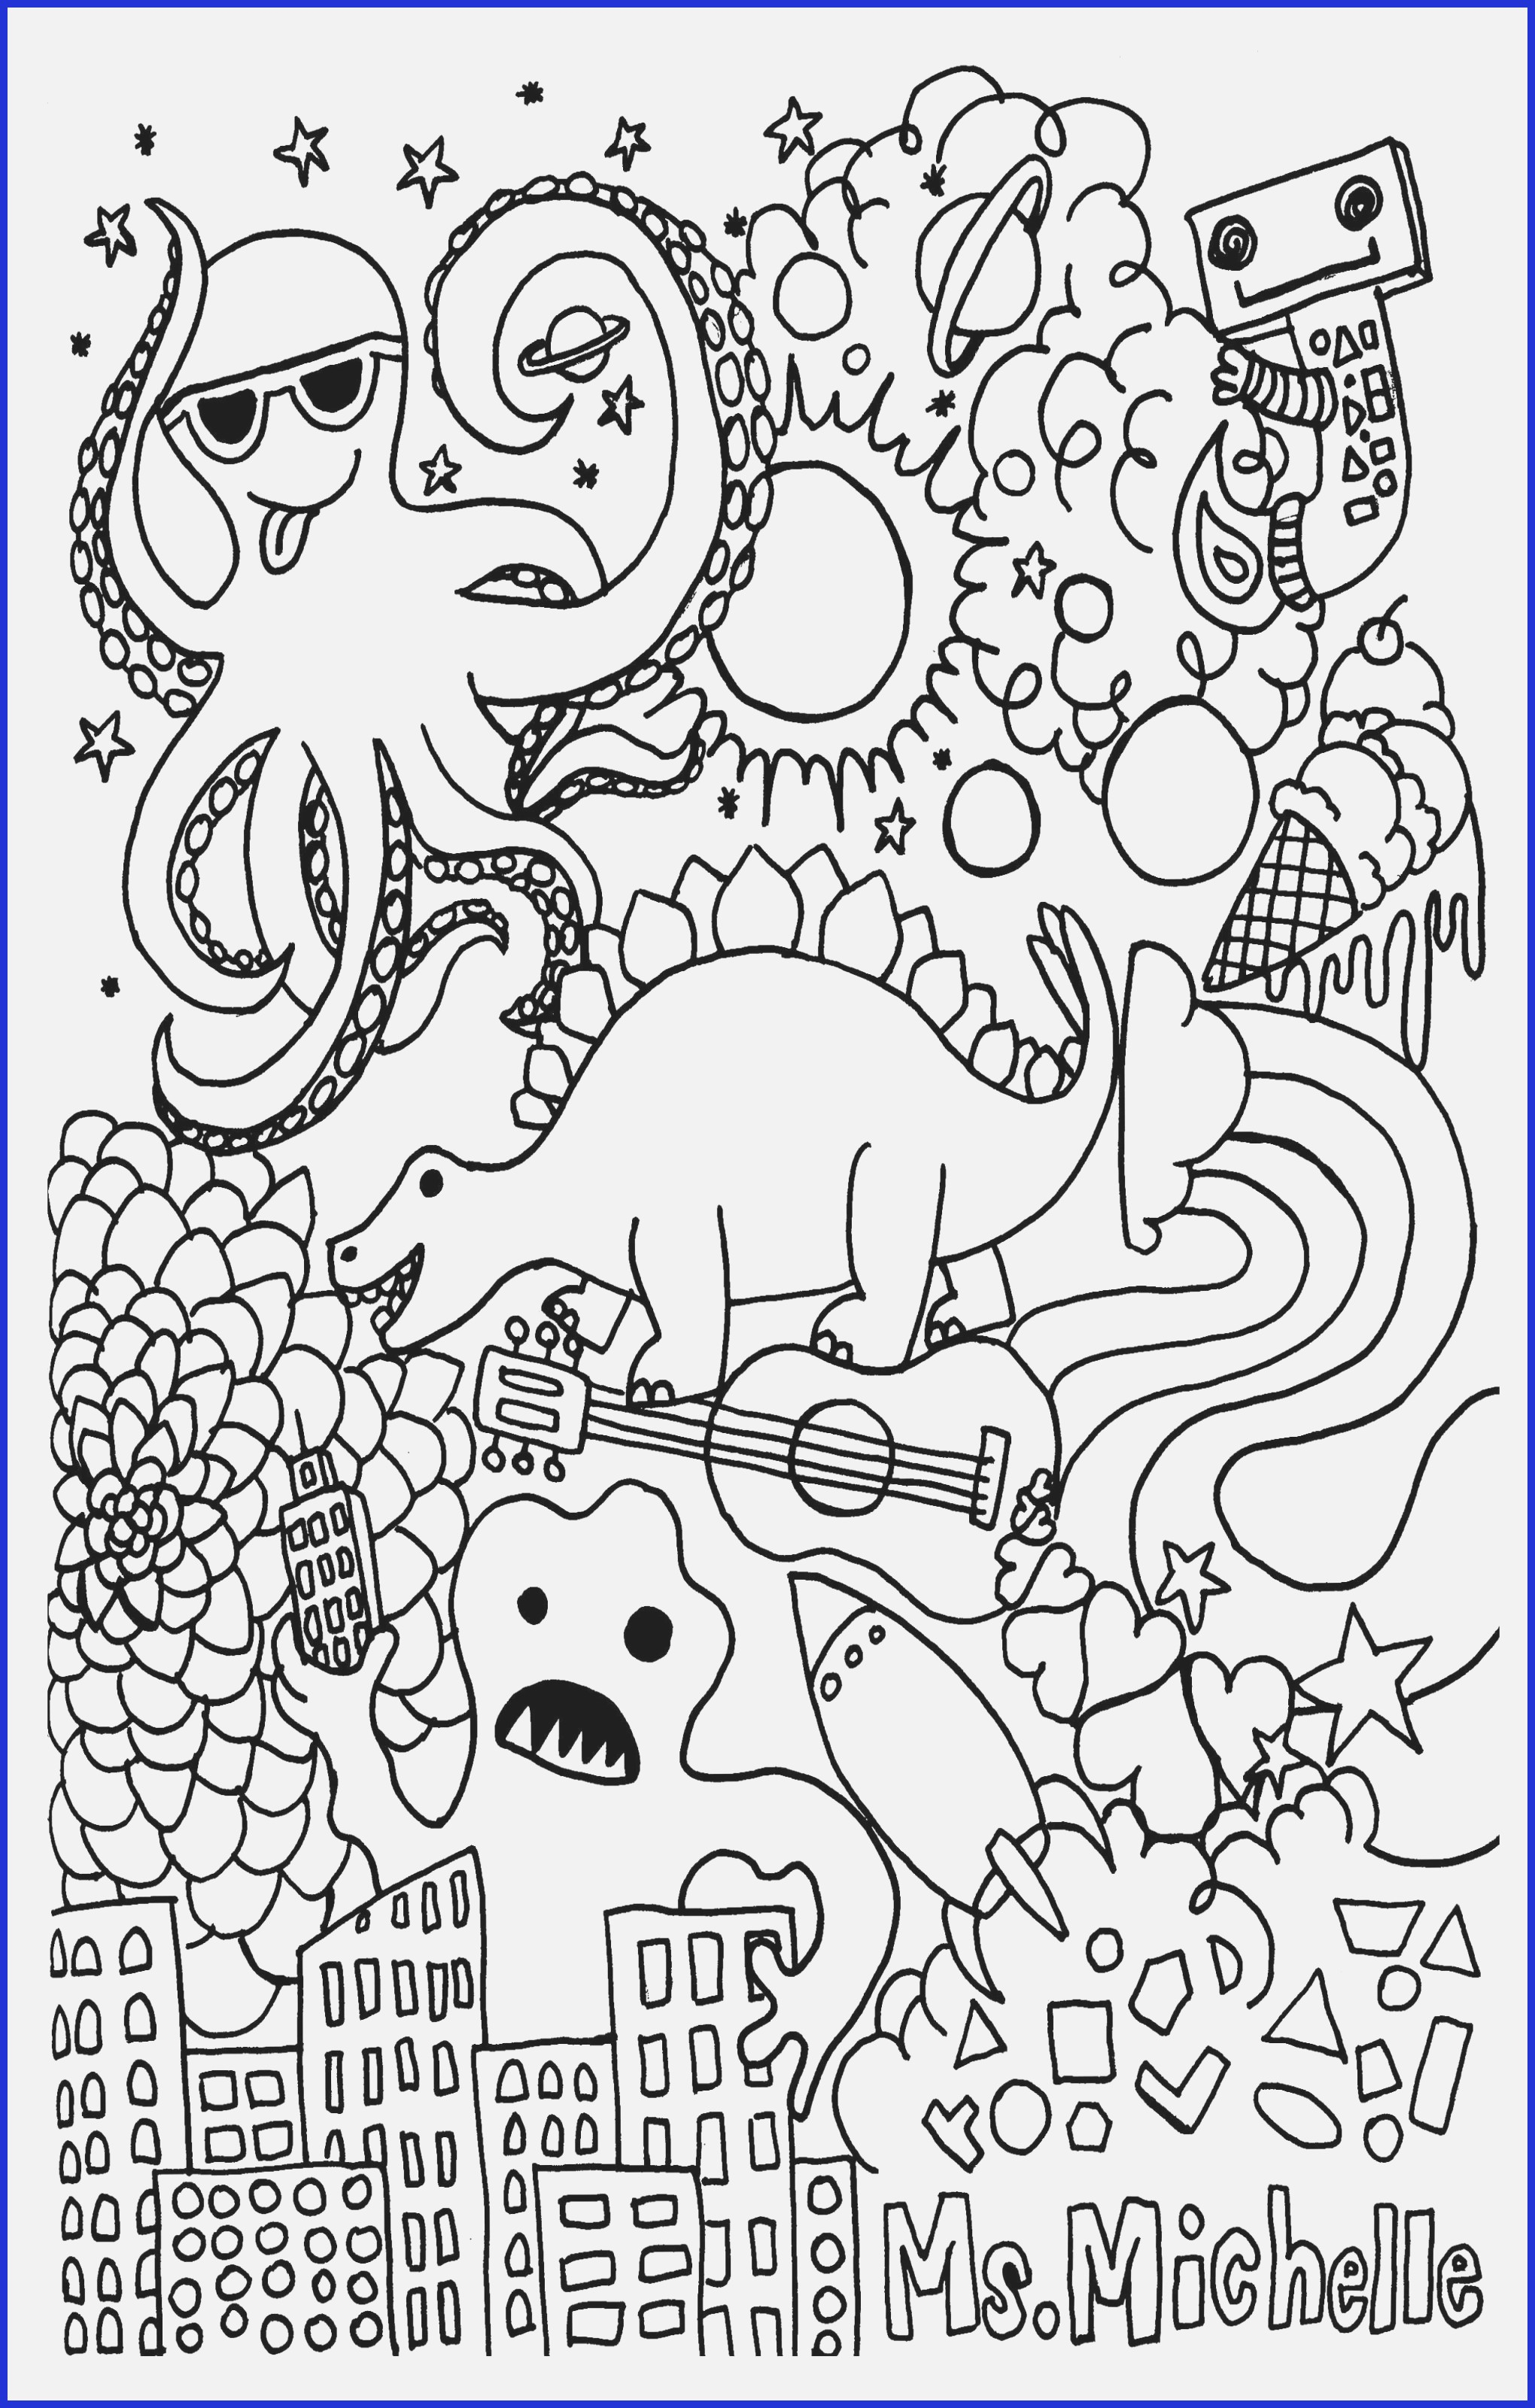 preschool halloween coloring pages Collection-Free Coloring Pages for Halloween Unique Best Coloring Page Adult Od Types Halloween Coloring Pages for 20-c